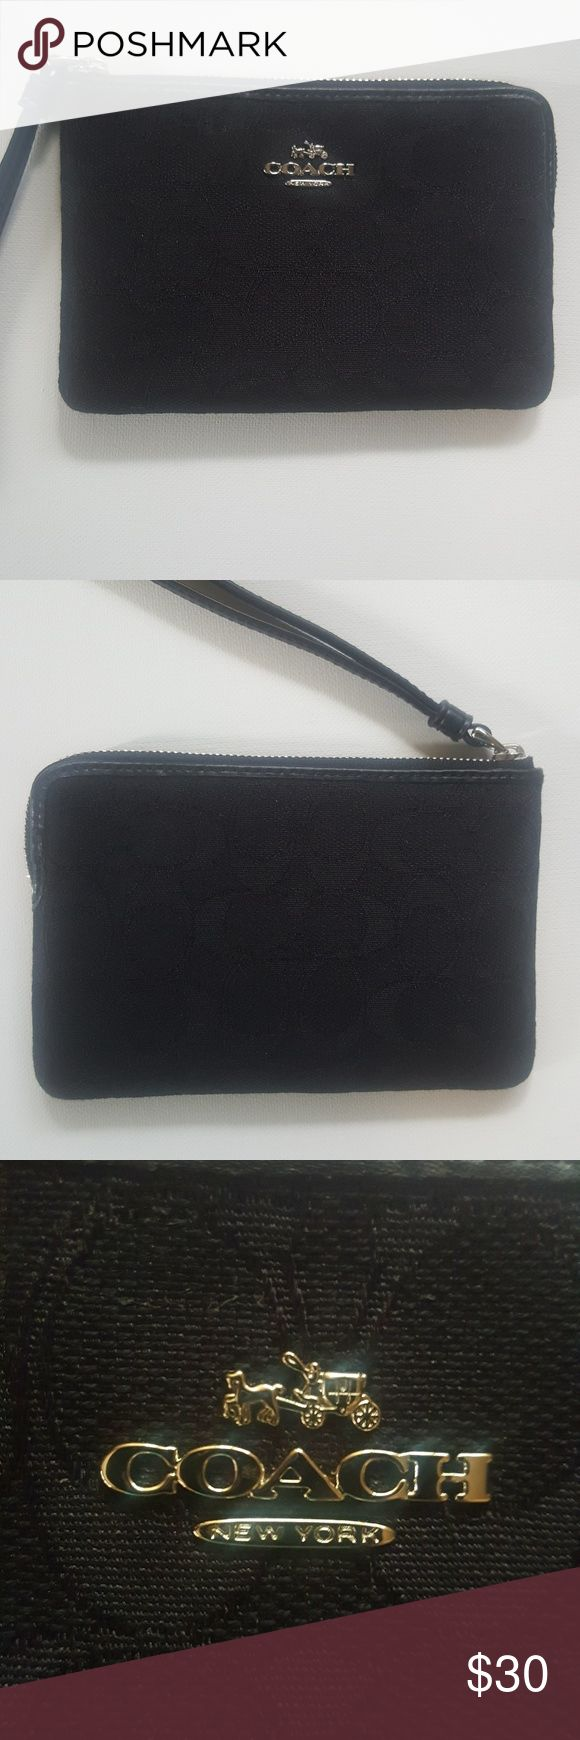 COACH Wristlet Black Monogram NWOT Black monogrammed wristlet in mint condition, never used. Coach New York with silver nameplate on the front. Still smells like the Coach store! Coach Bags Clutches & Wristlets